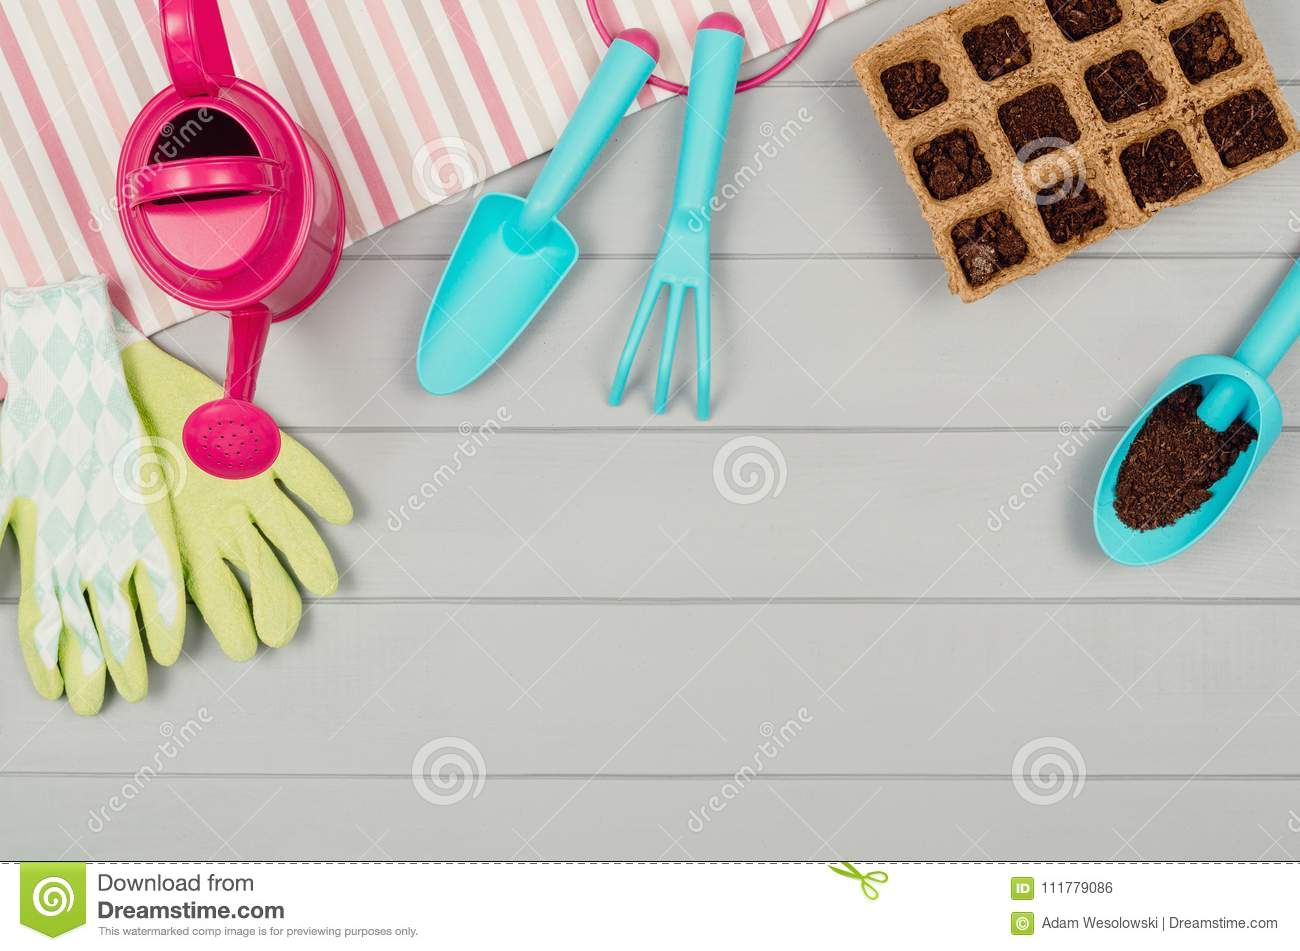 Gardening tools on gray wooden table background top view